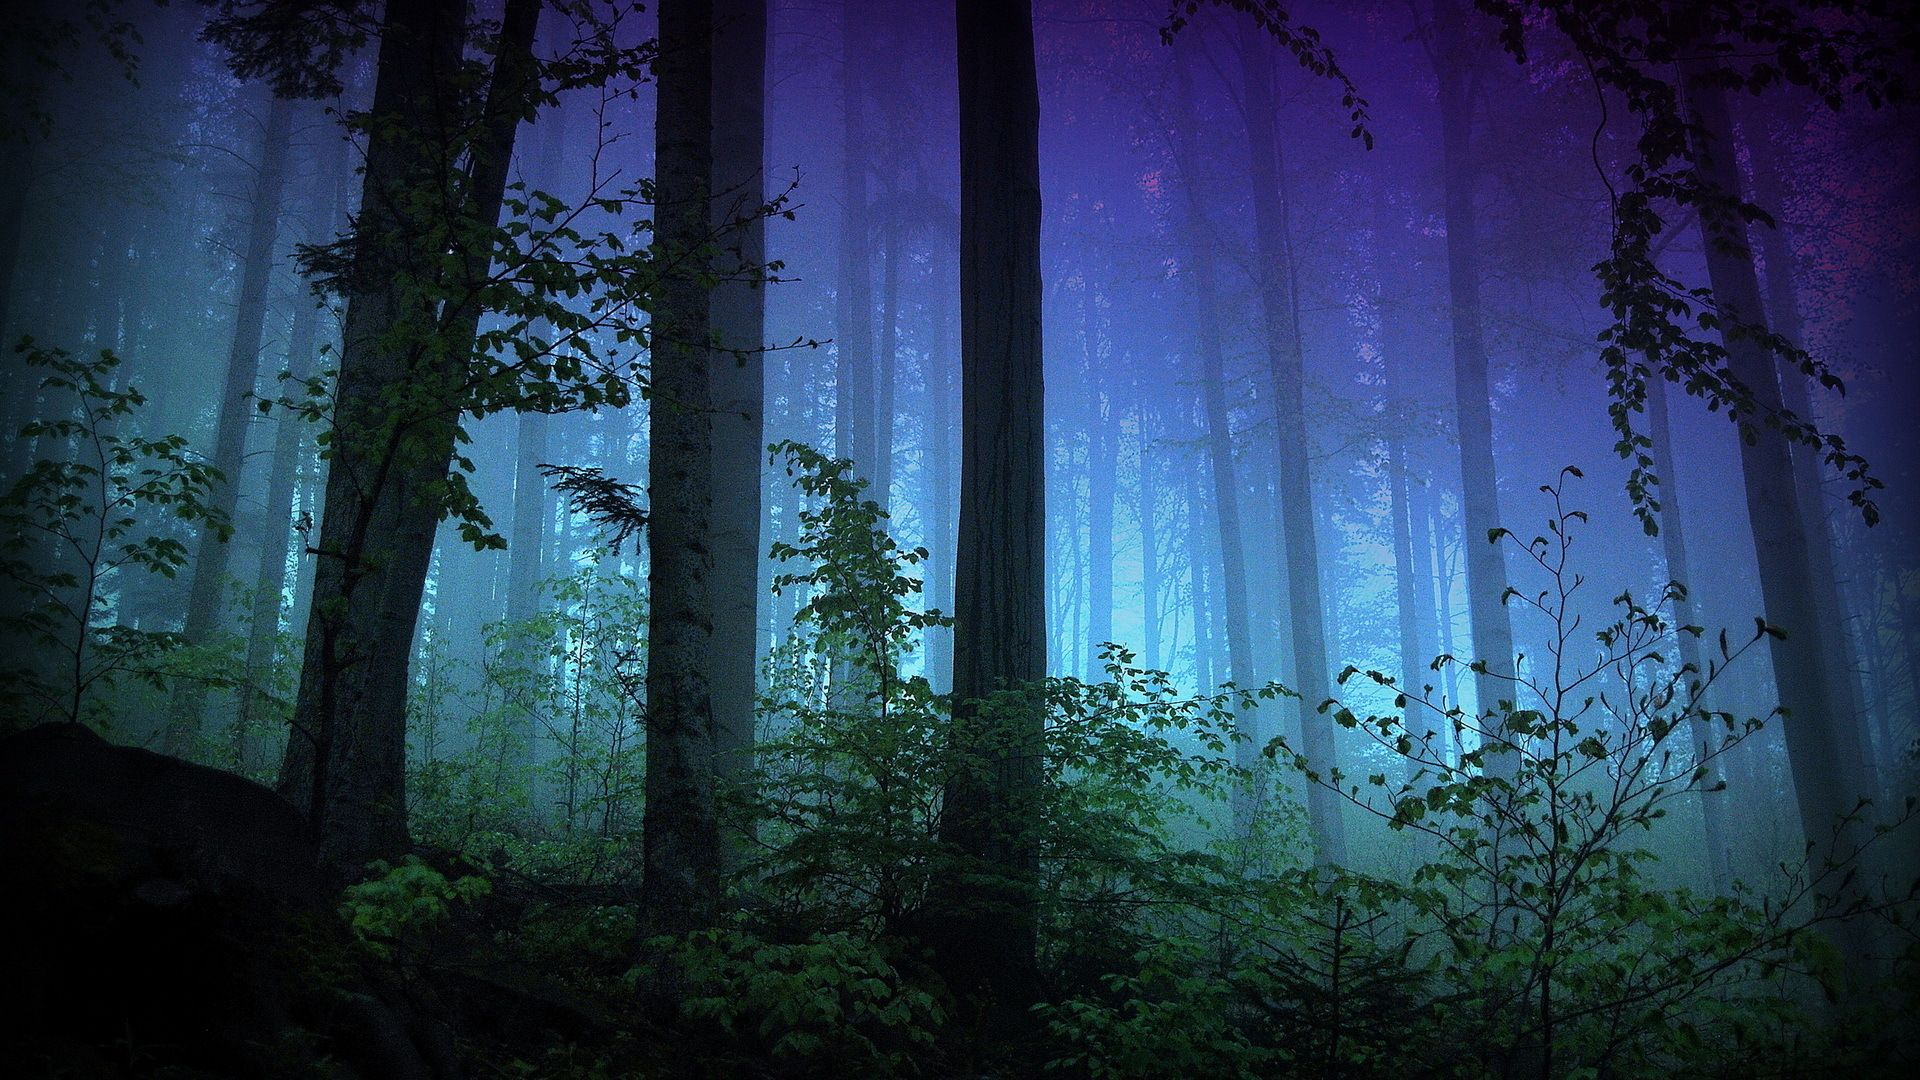 Night Forest Images 2